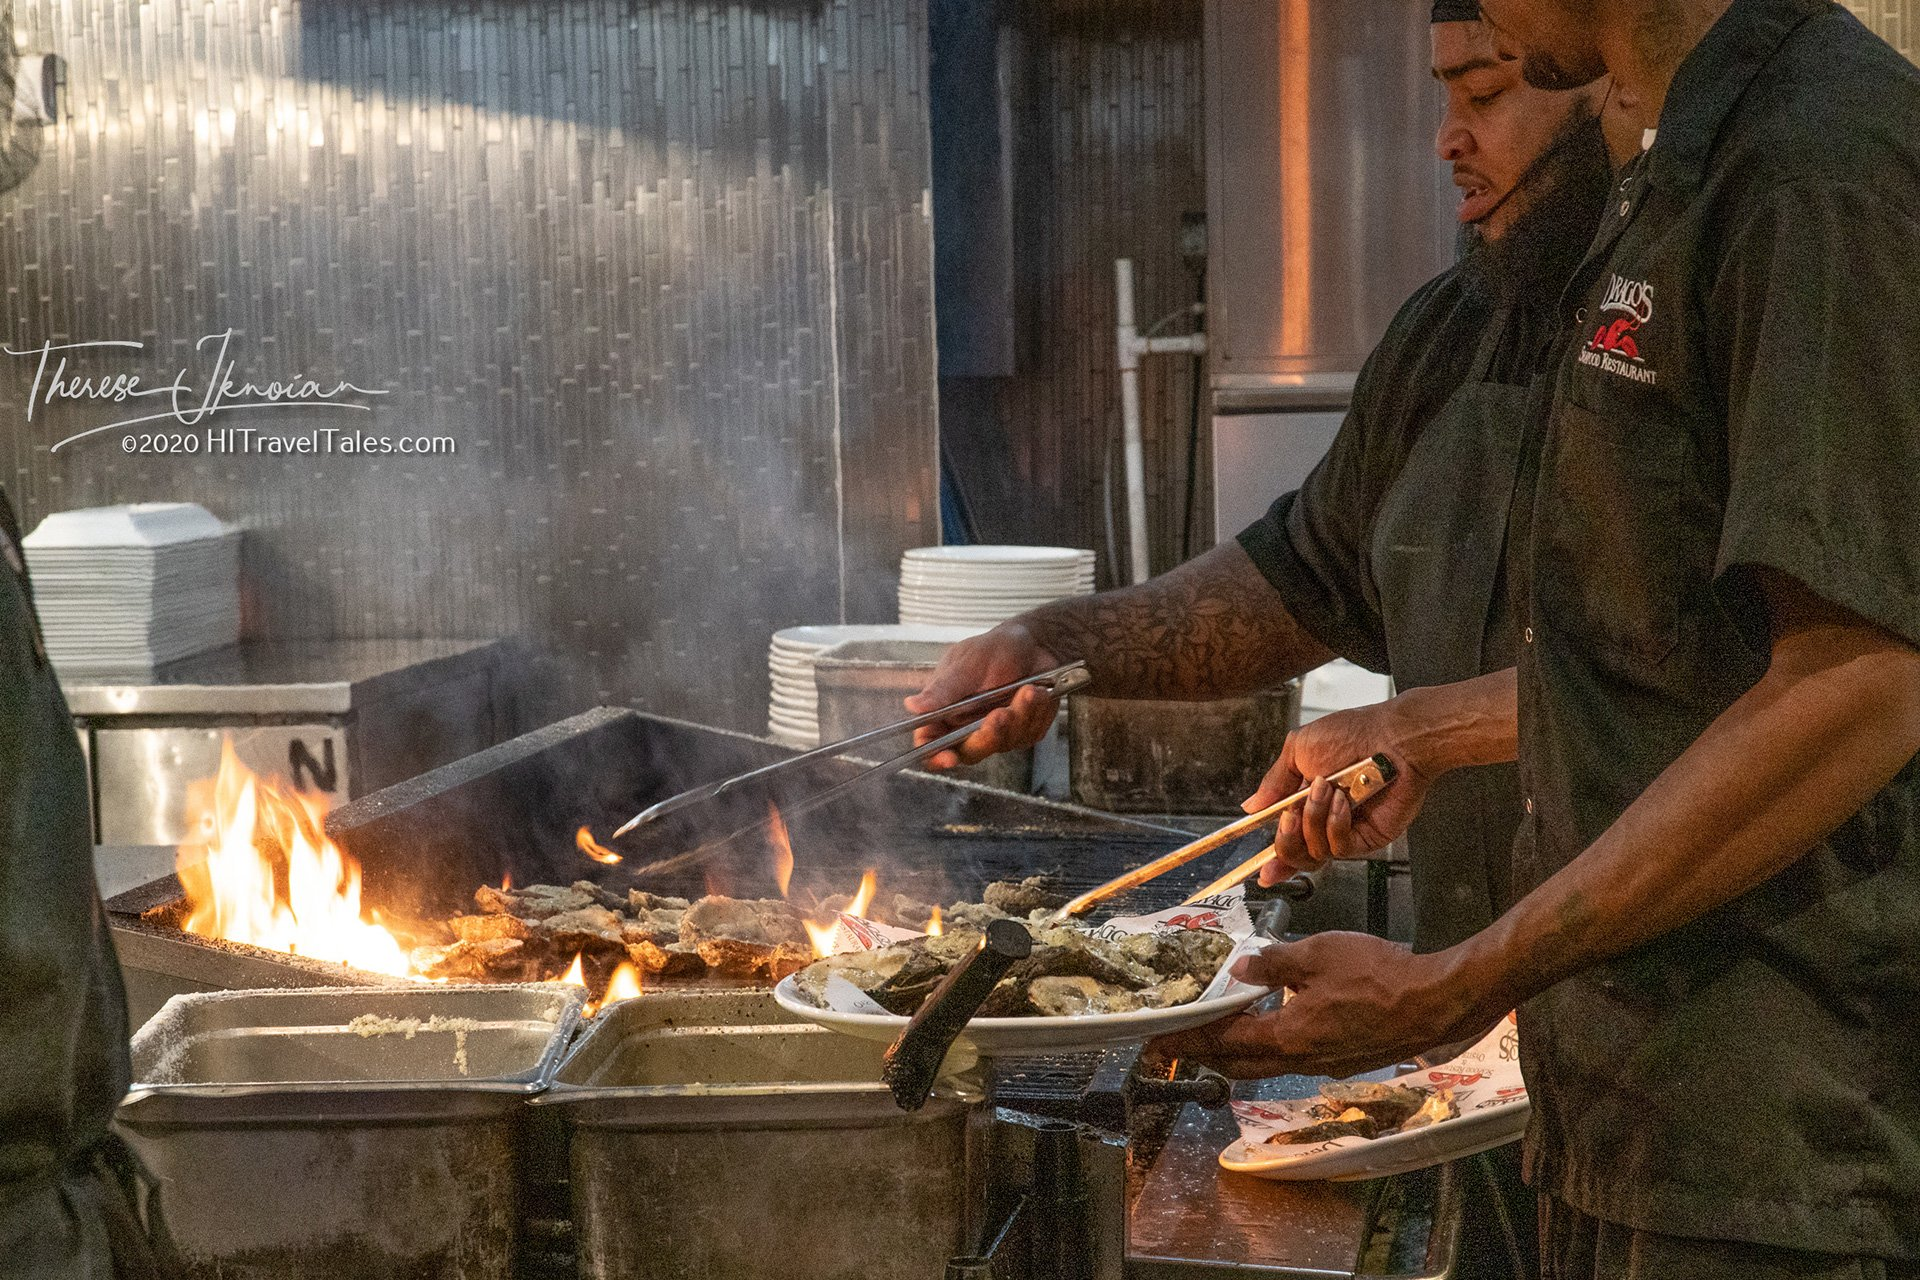 Charbroiling oysters at Drago's in New Orleans by Therese Iknoian